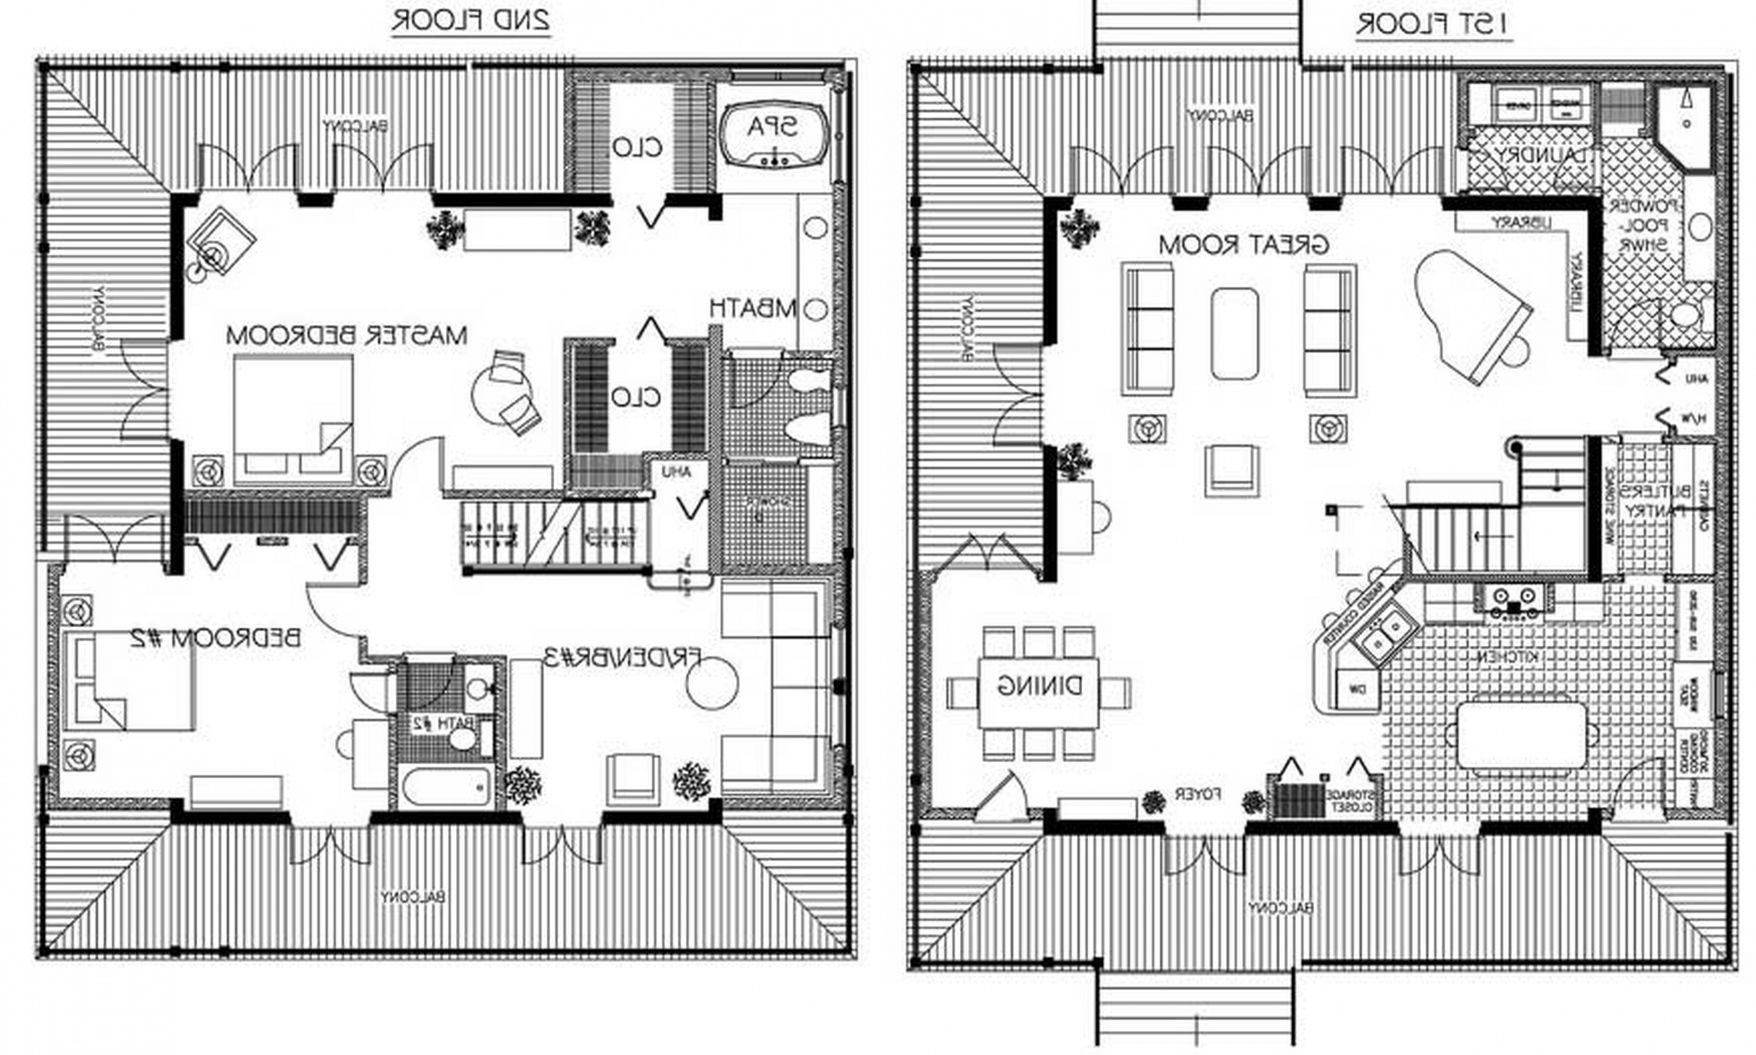 Beautiful house floor plans software free download check more at beautiful house floor plans software free download check more at http malvernweather Gallery